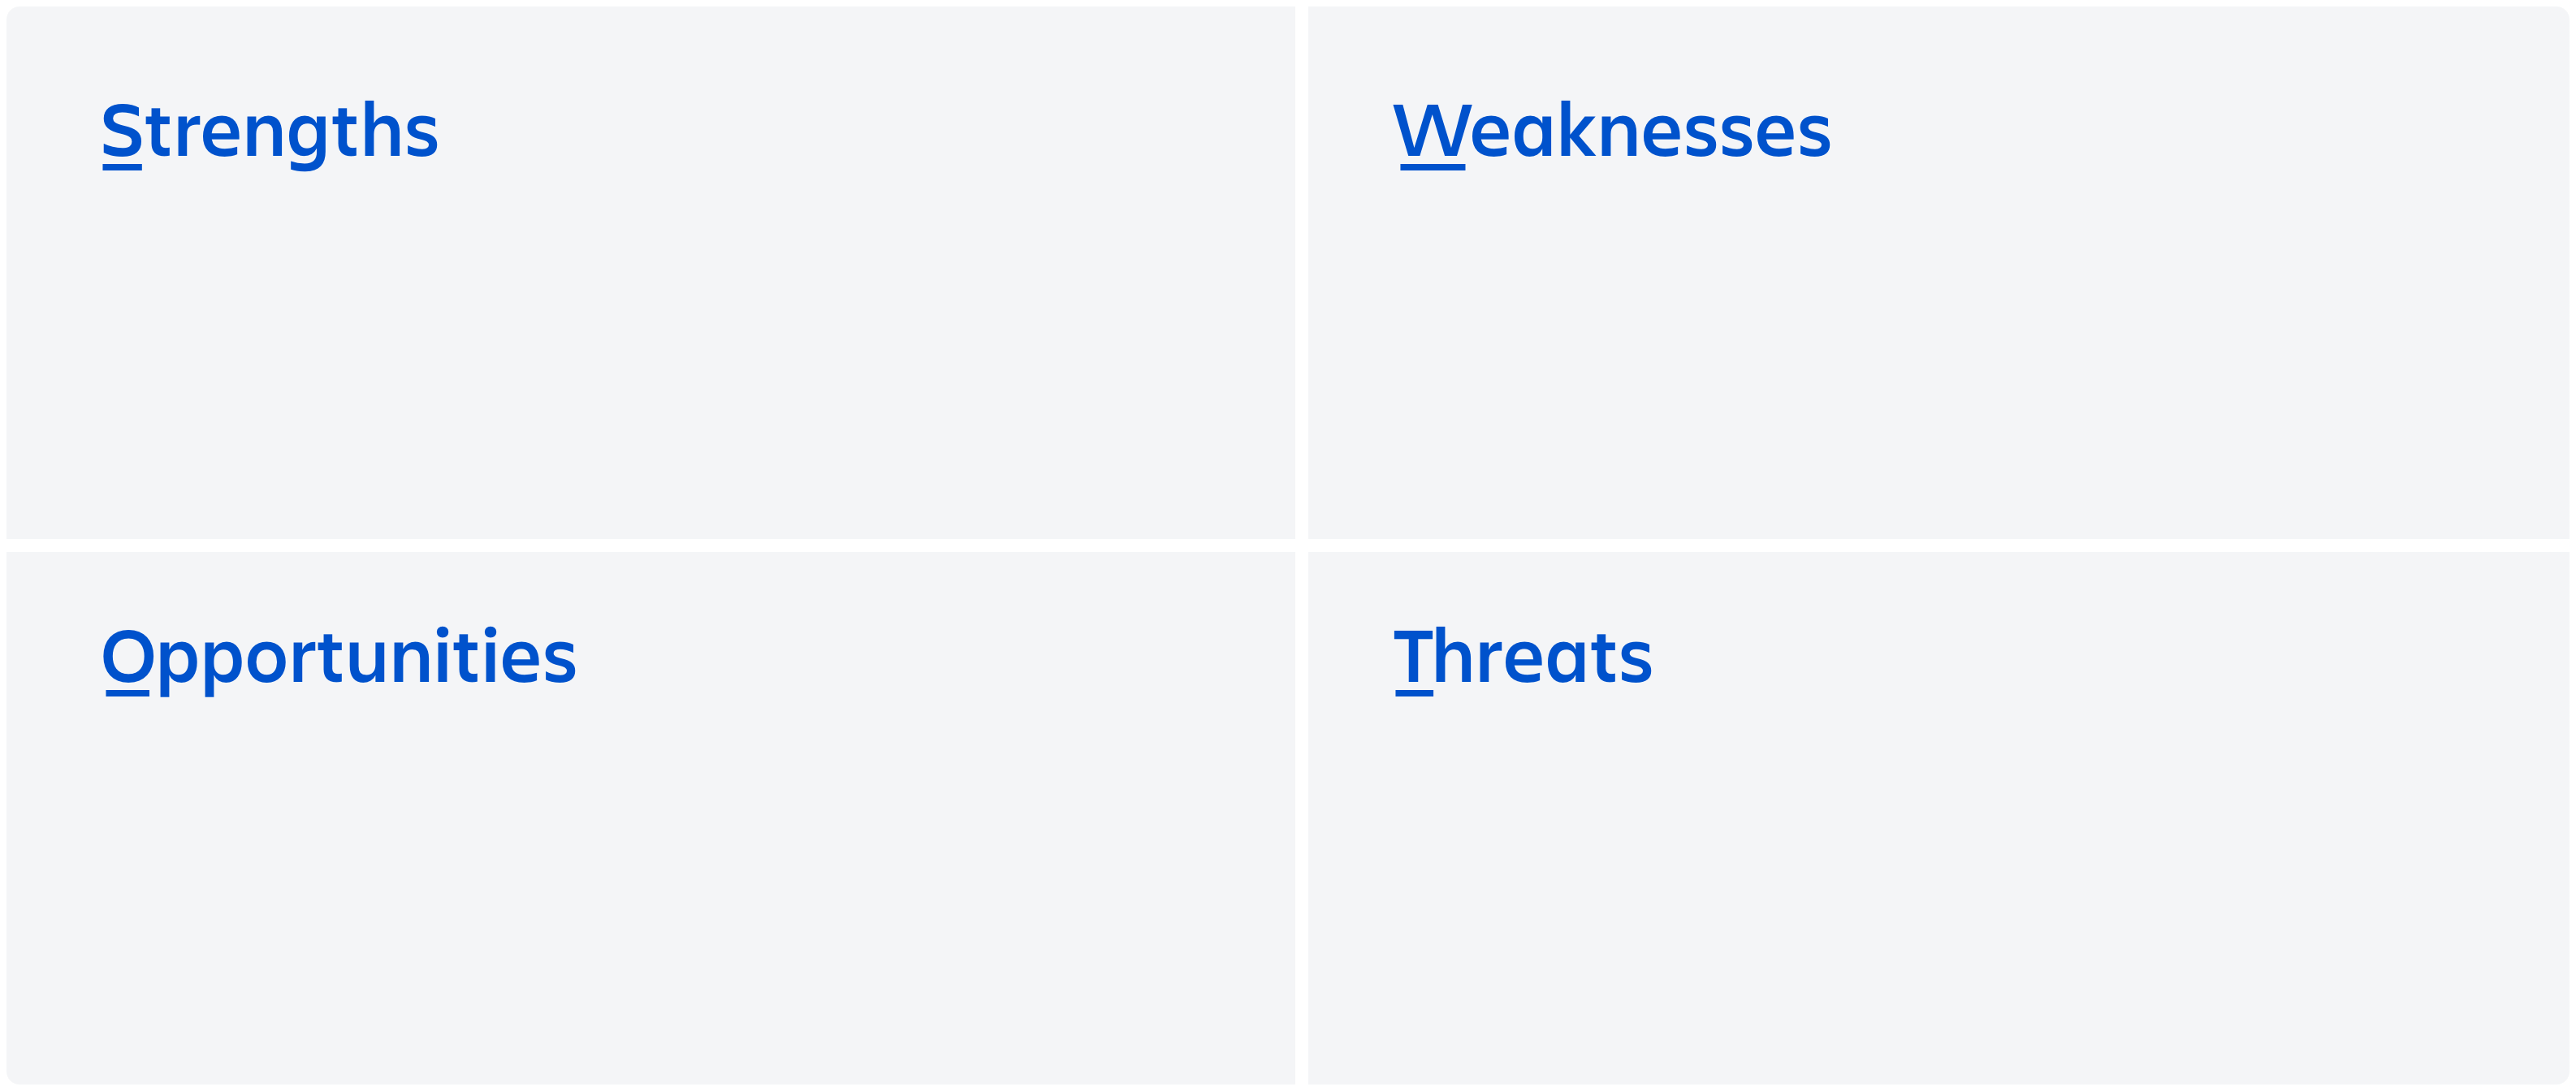 SWOT (Strenghts, Weaknesses, Opportunities, and Threats) diagram